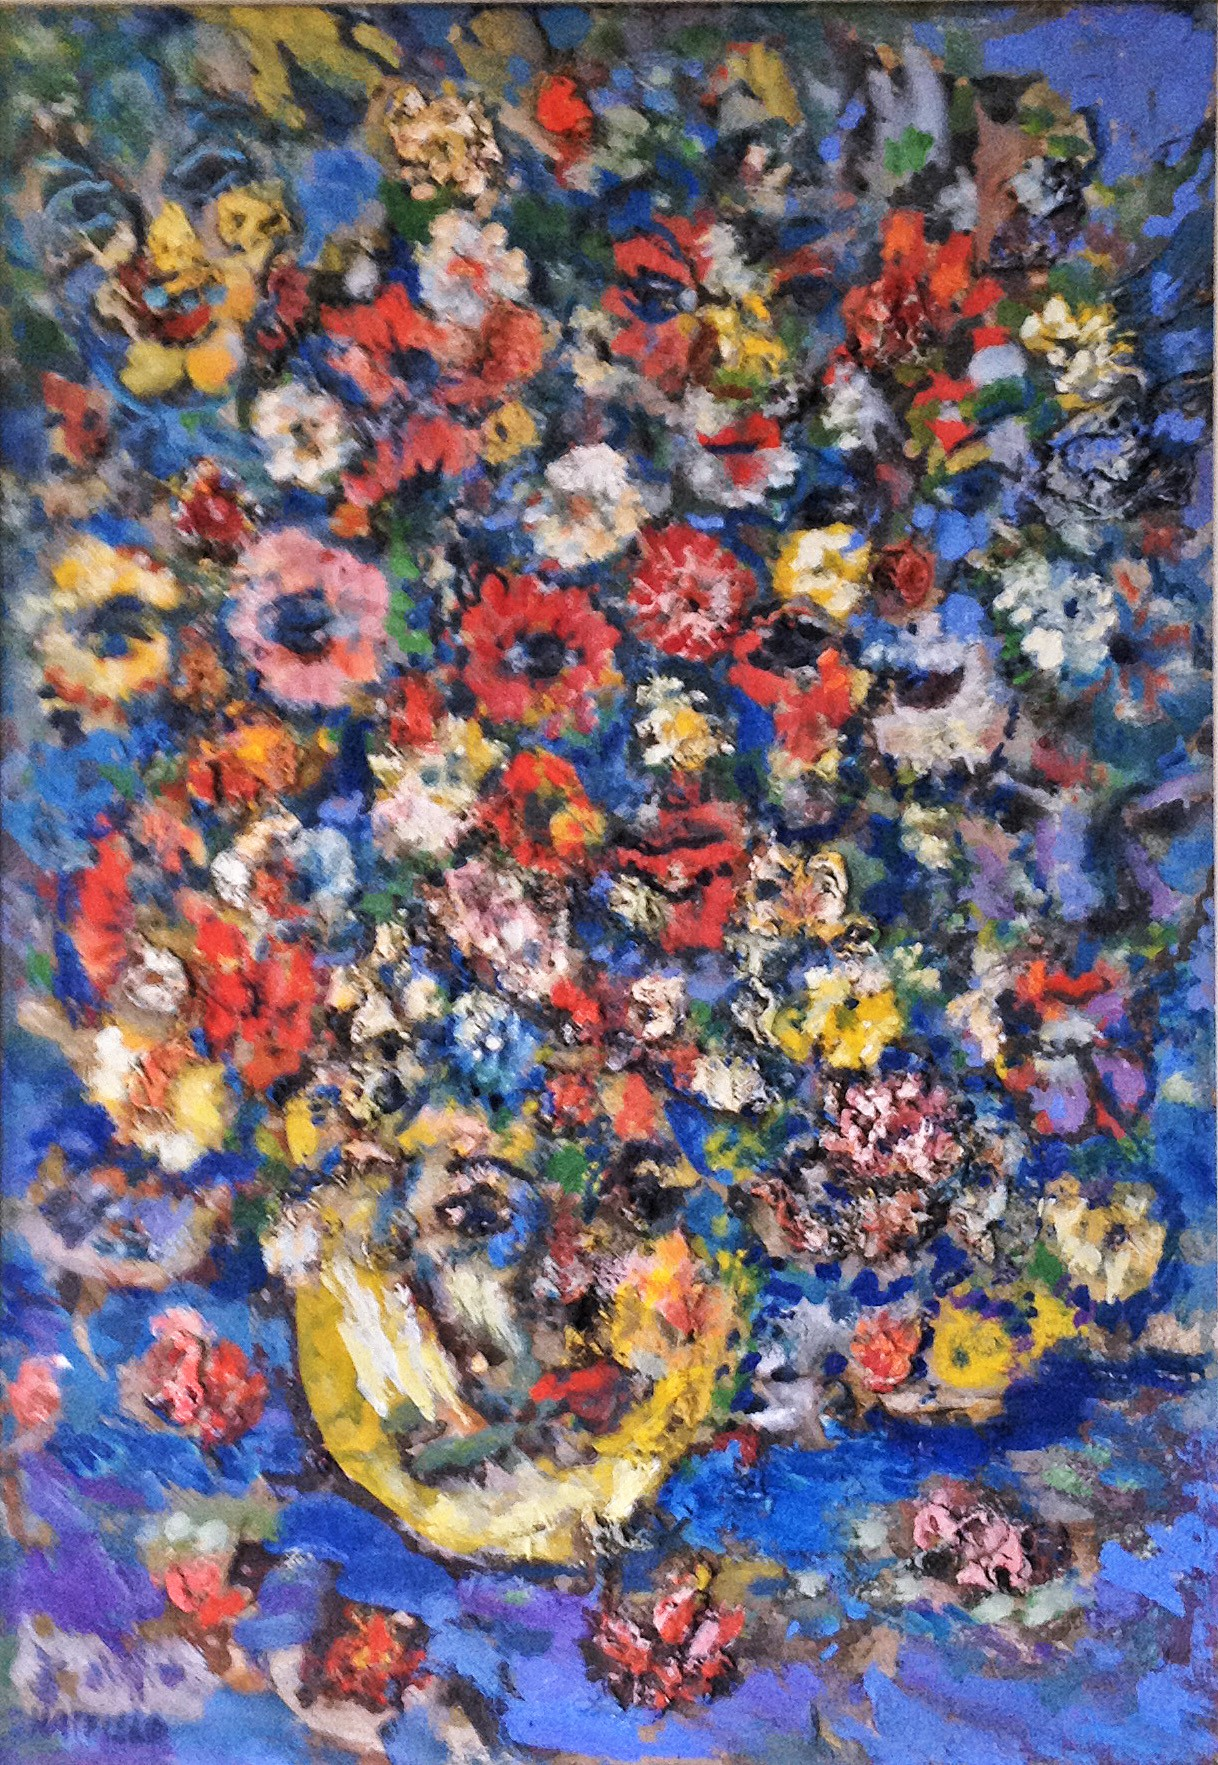 583 - Oil - Summer Flowers & Some are Faces - 16x24 .jpg